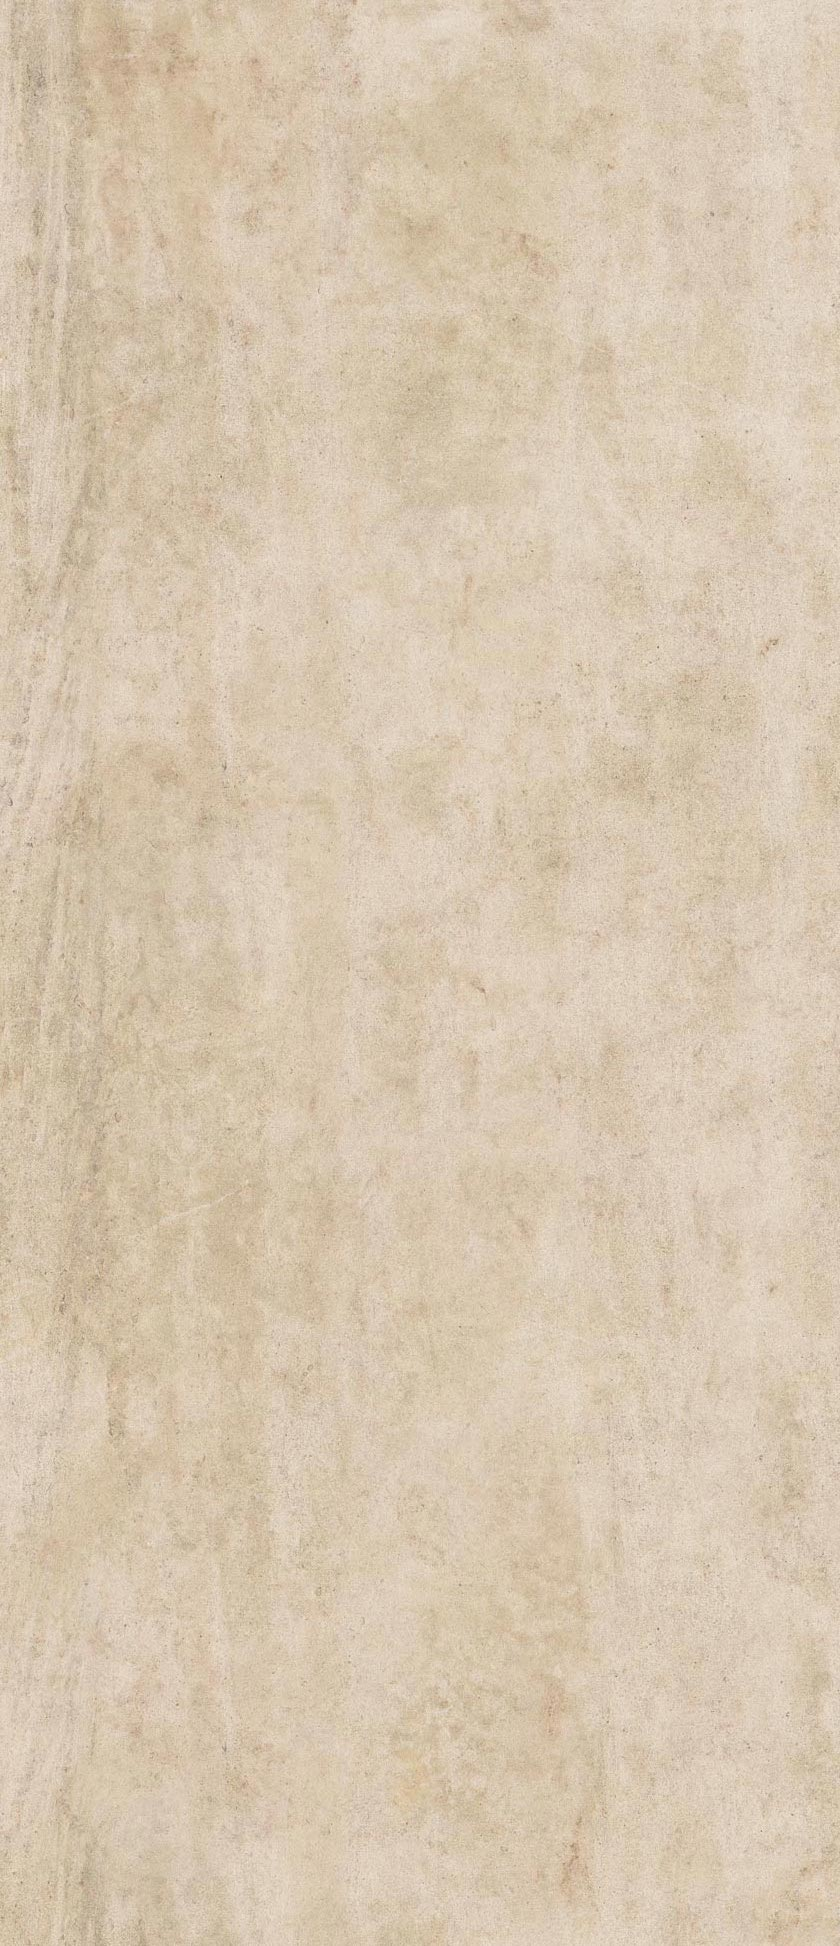 grandi-superfici-gres-porcellanato-atlas-plan-lims-beige